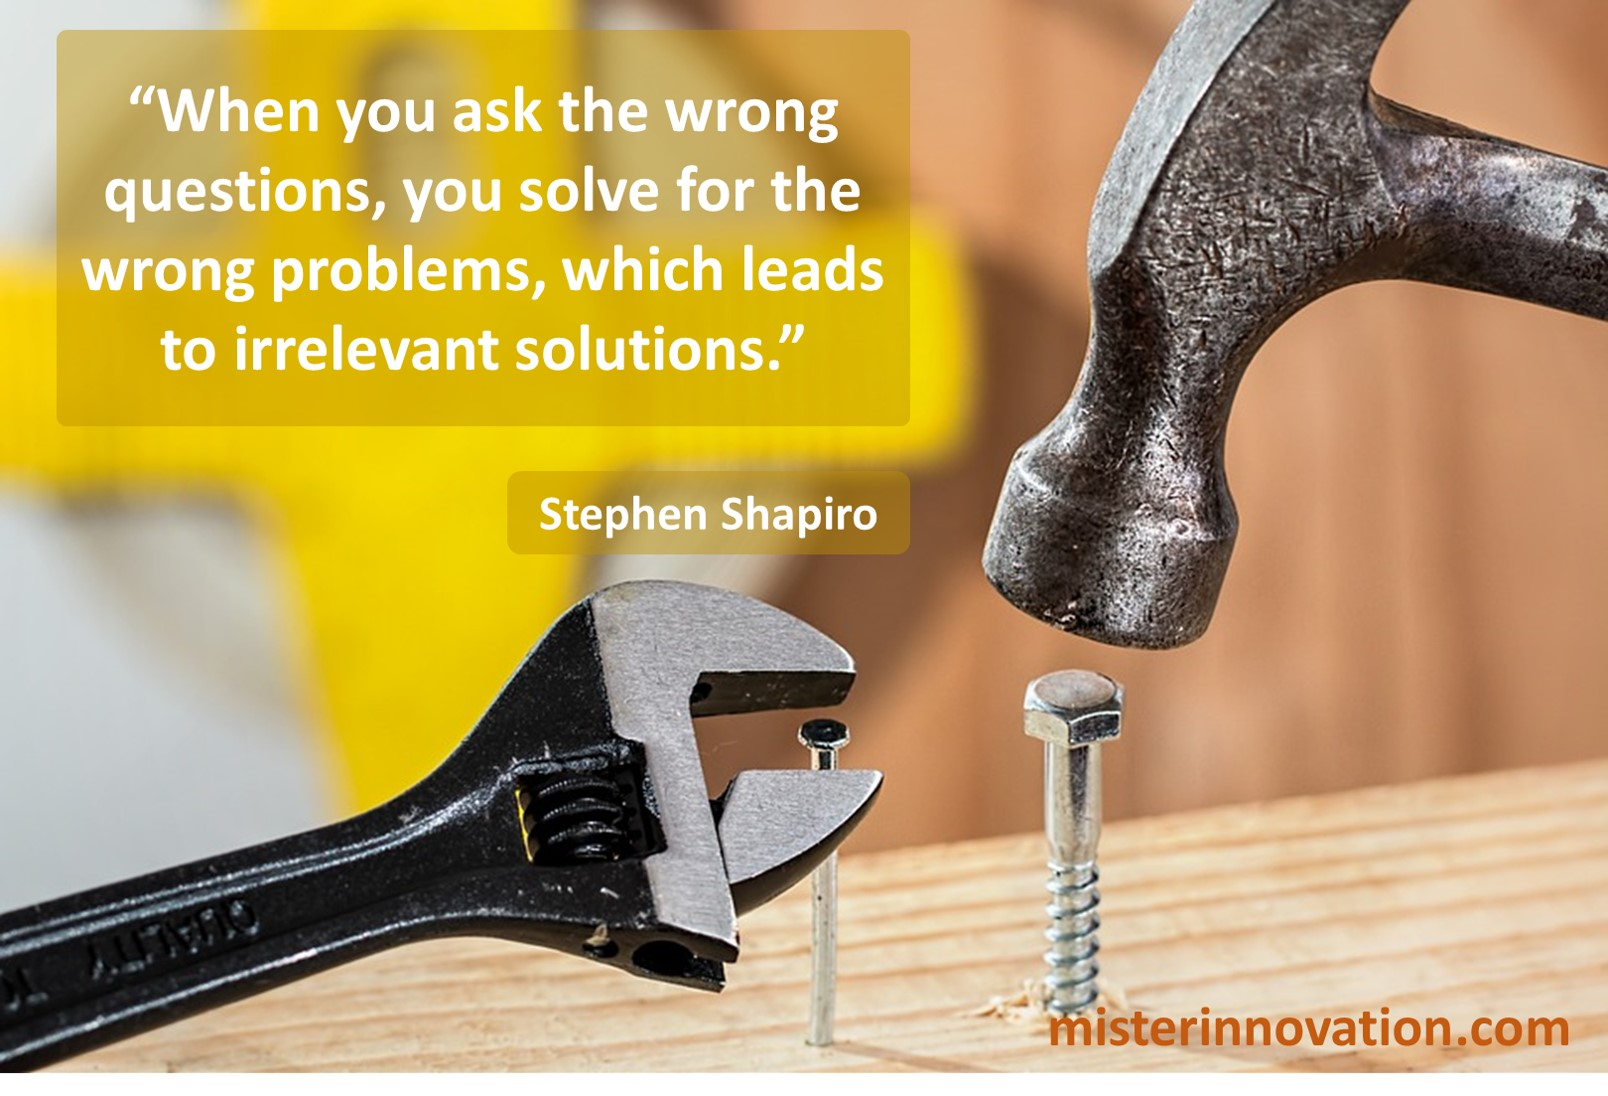 Stephen Shapiro Quote on Problem Solving for Wrong Solutions